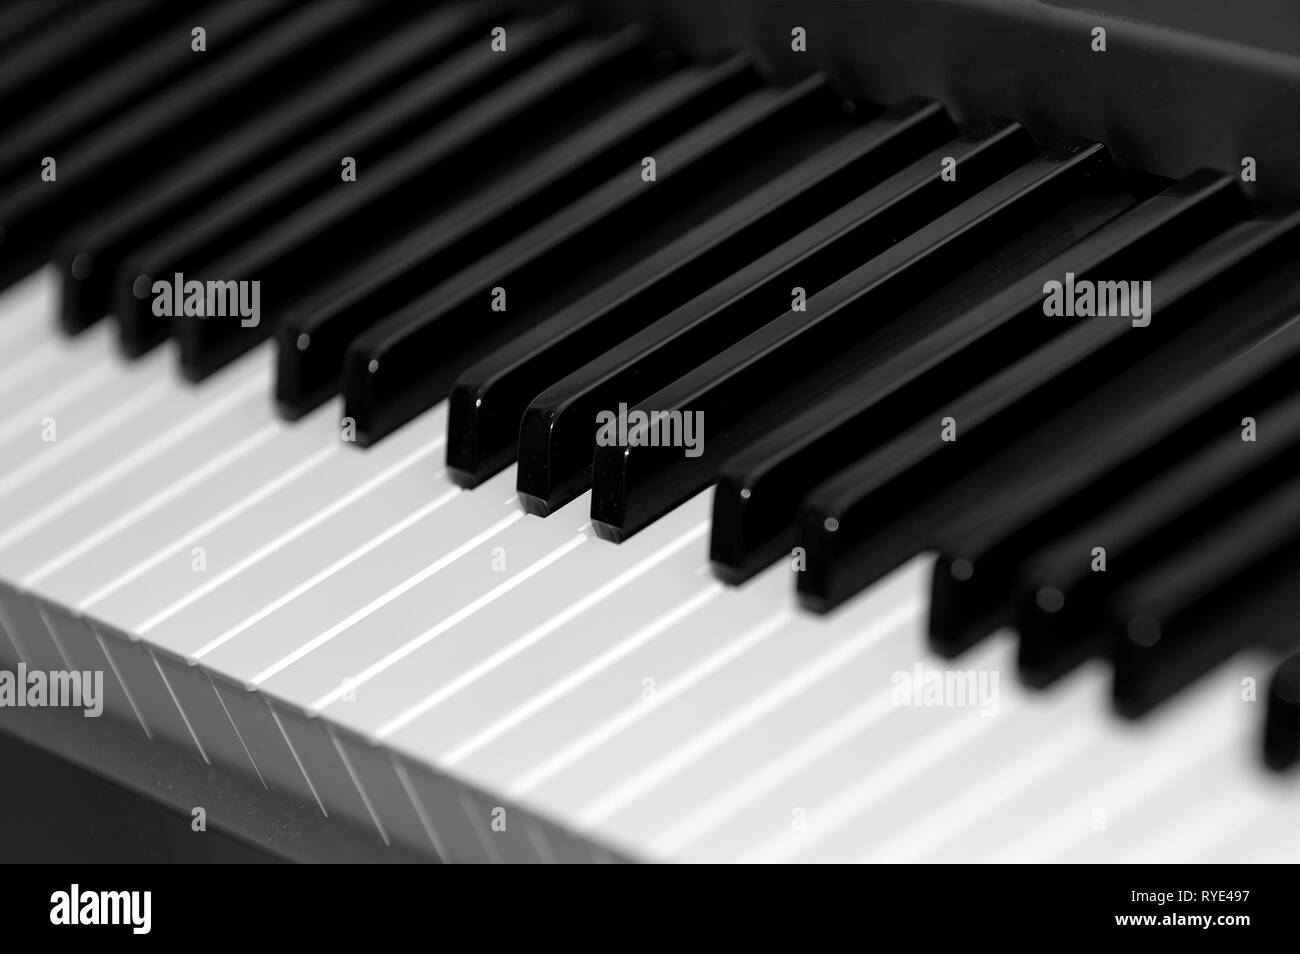 Black and white electric piano keys - Stock Image